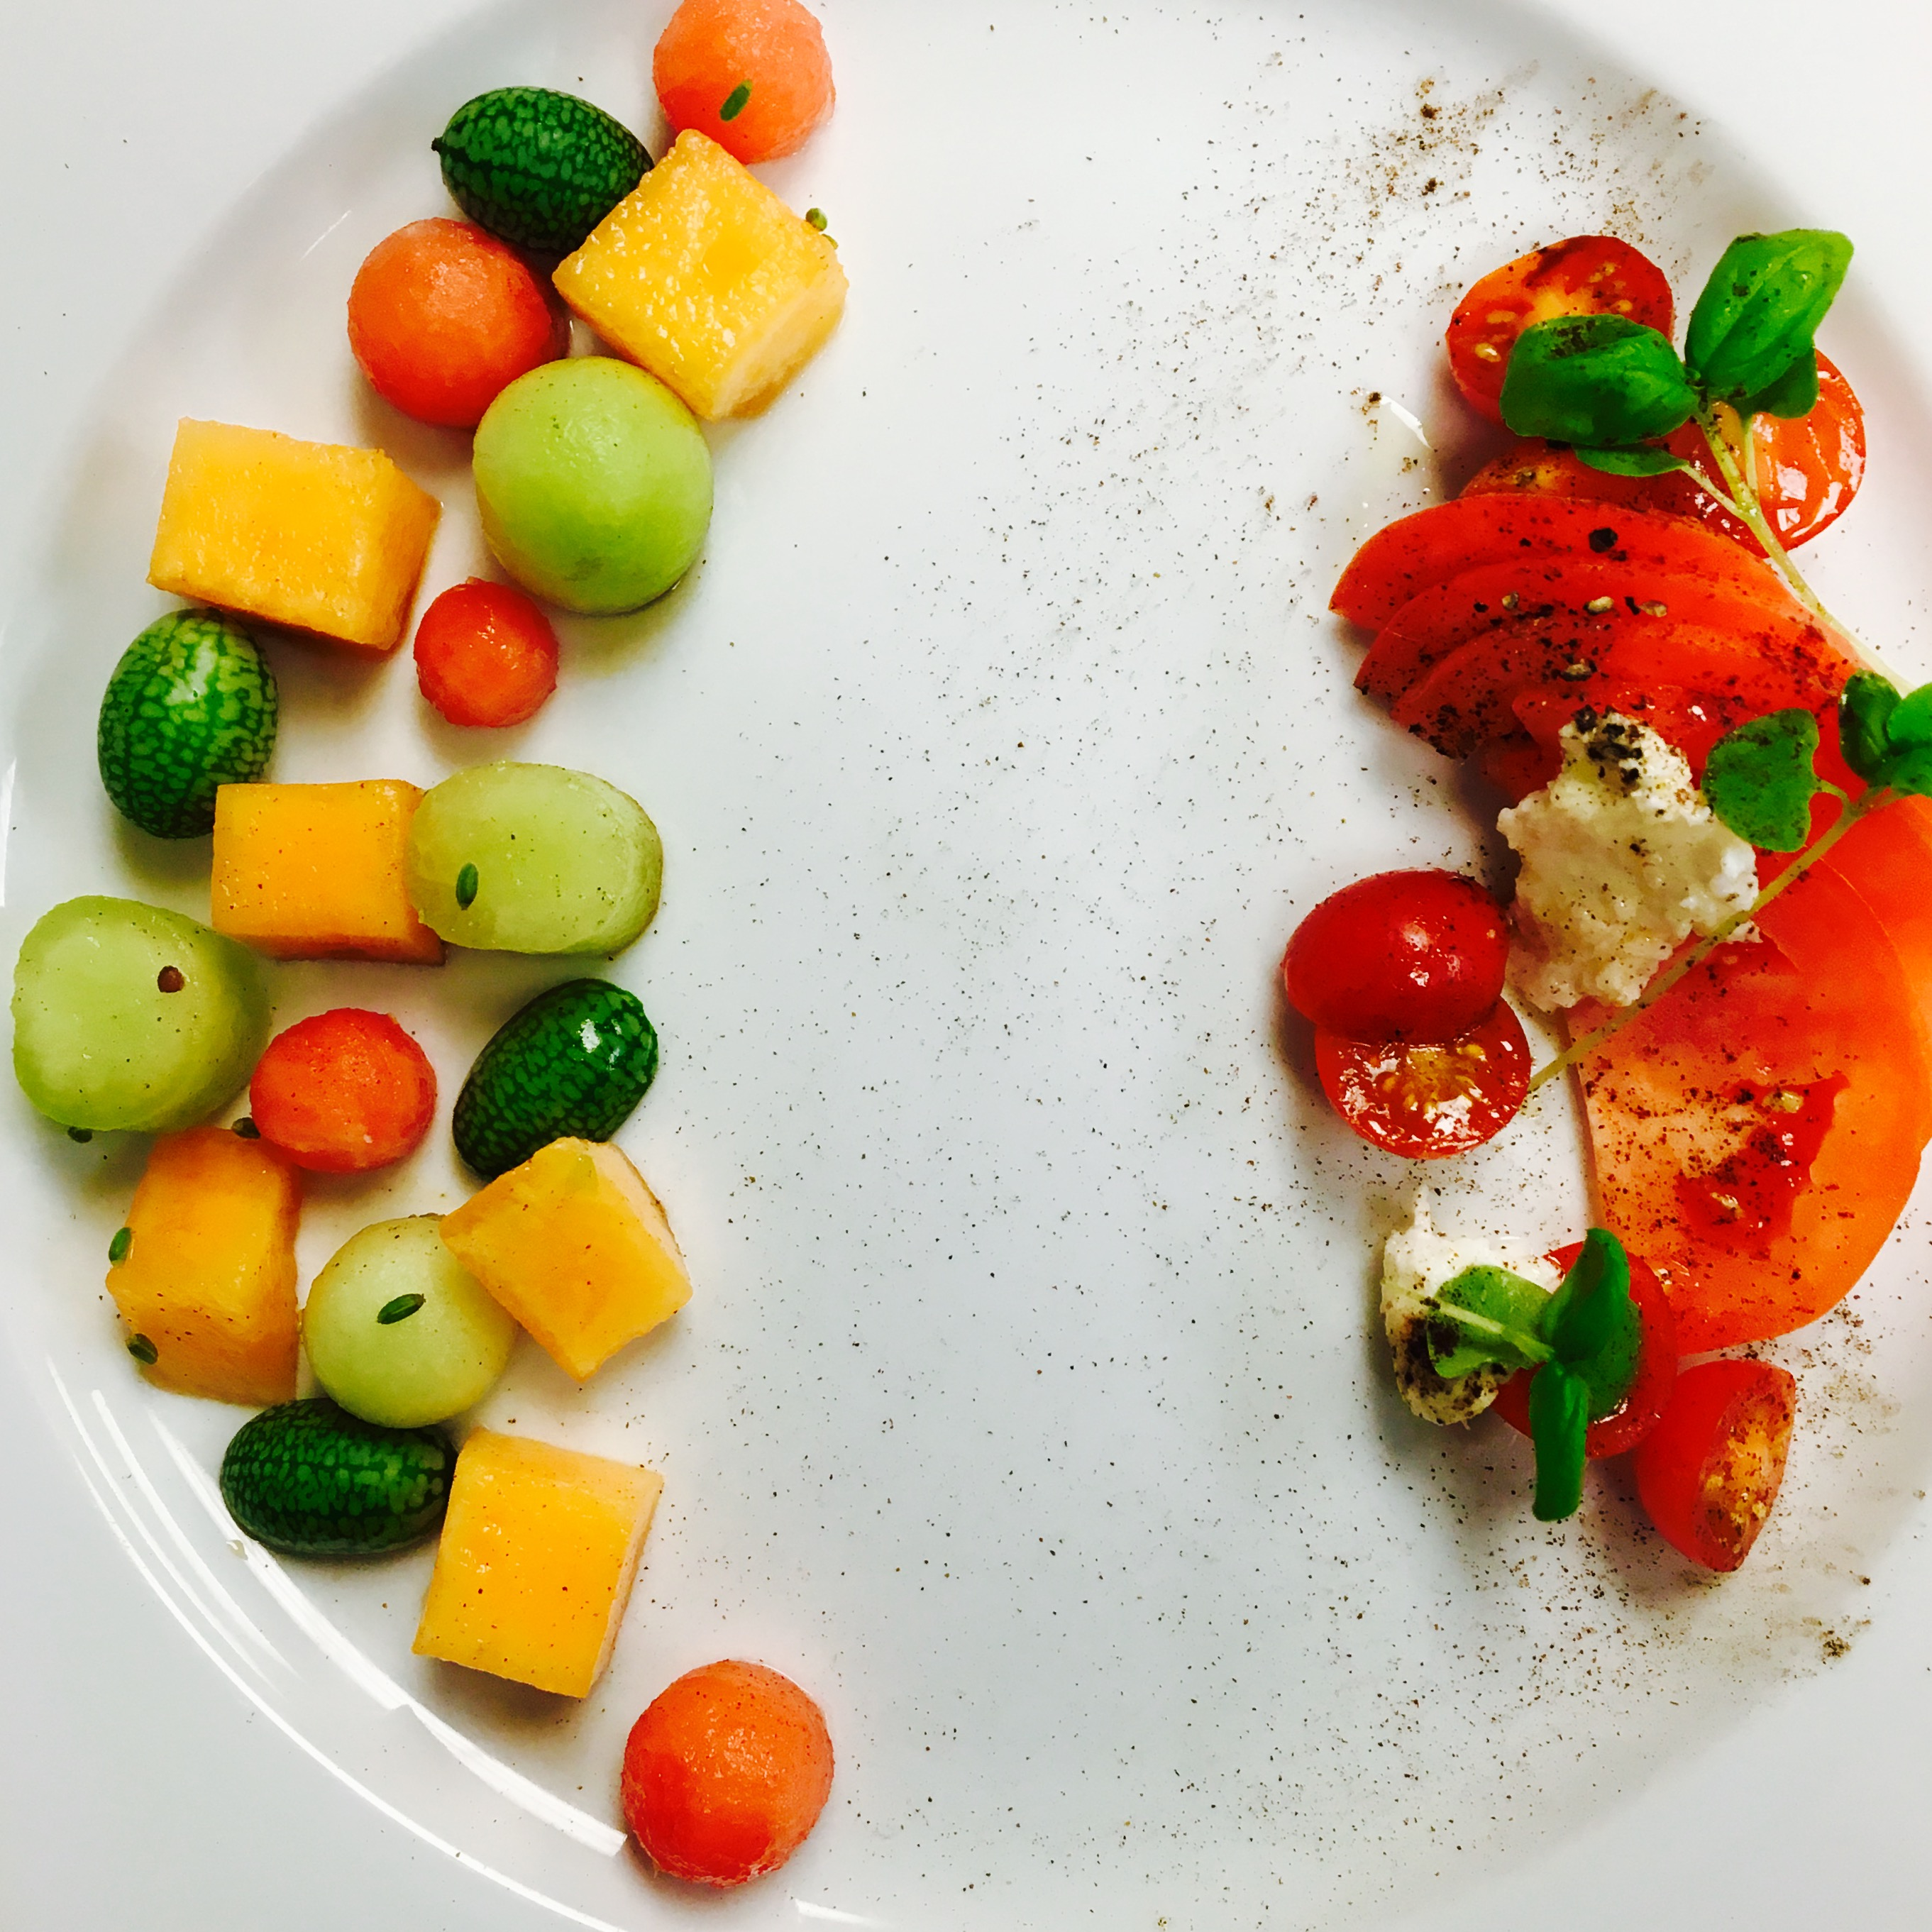 the end result was a fairly laborious design with different cuts of melon and tomatoes elegantly presented to complement the events vibe